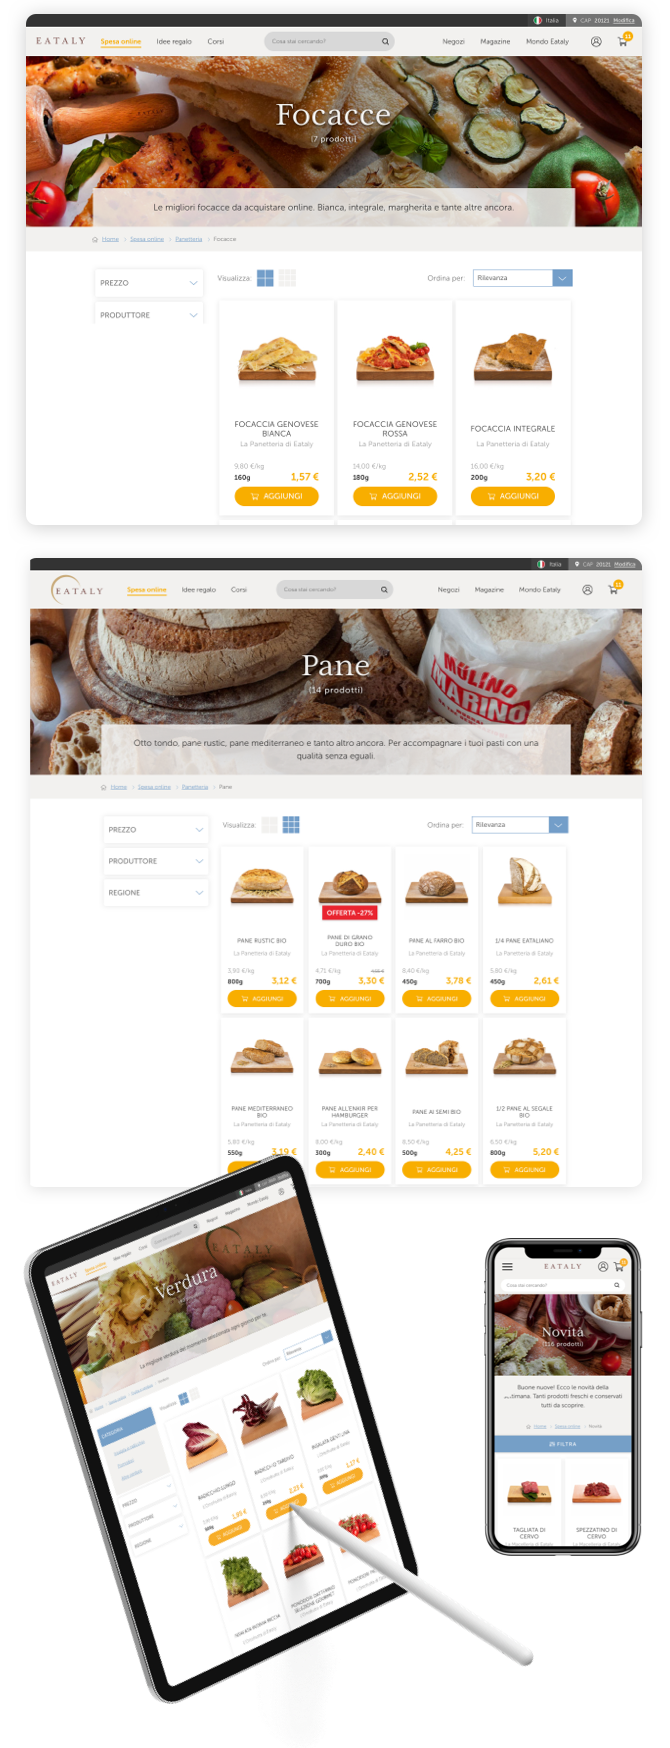 Category page screens